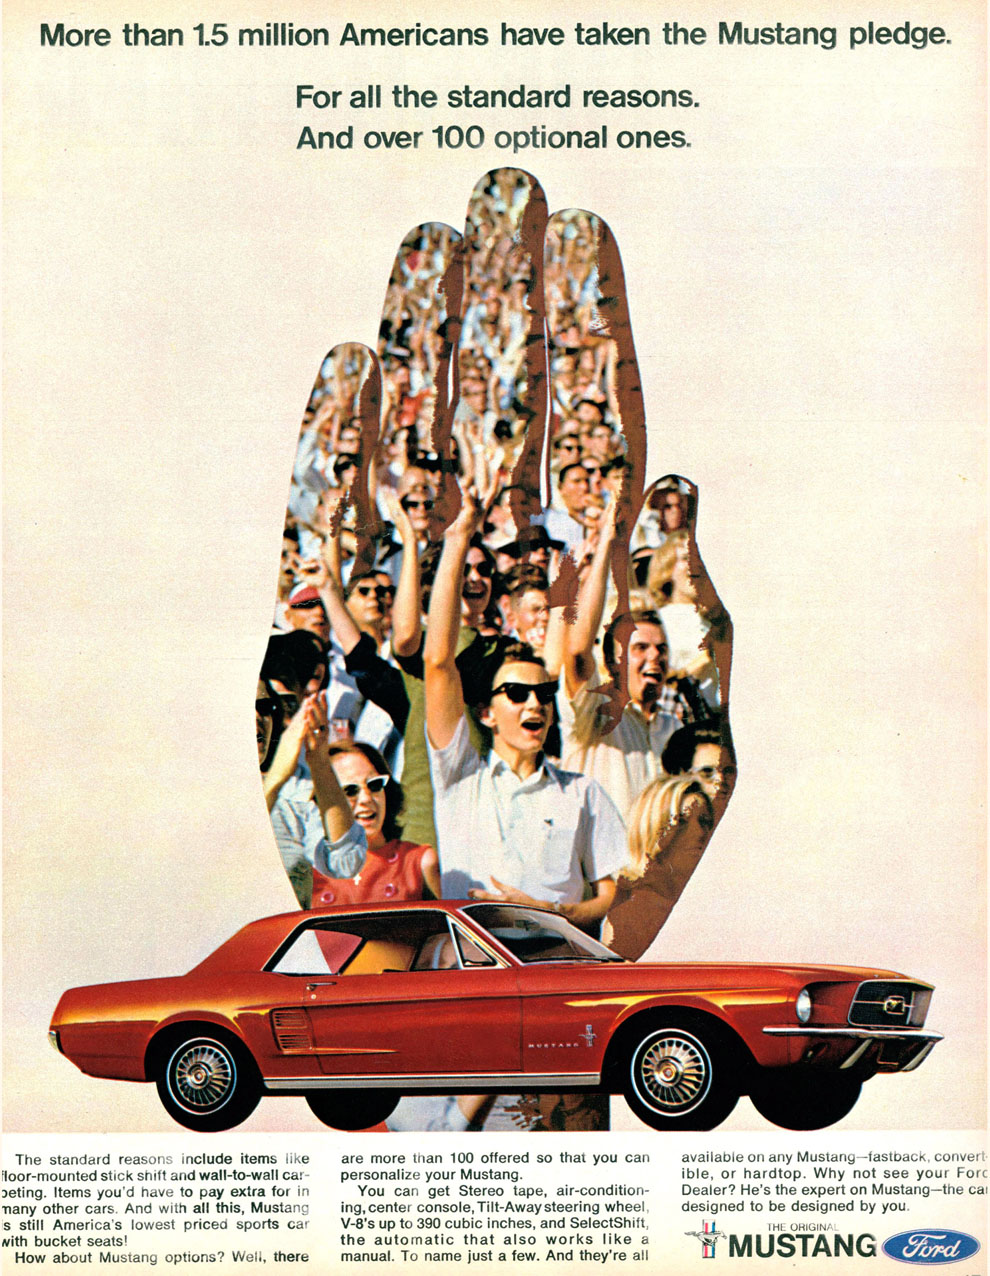 1967 - take the Mustang pledge!